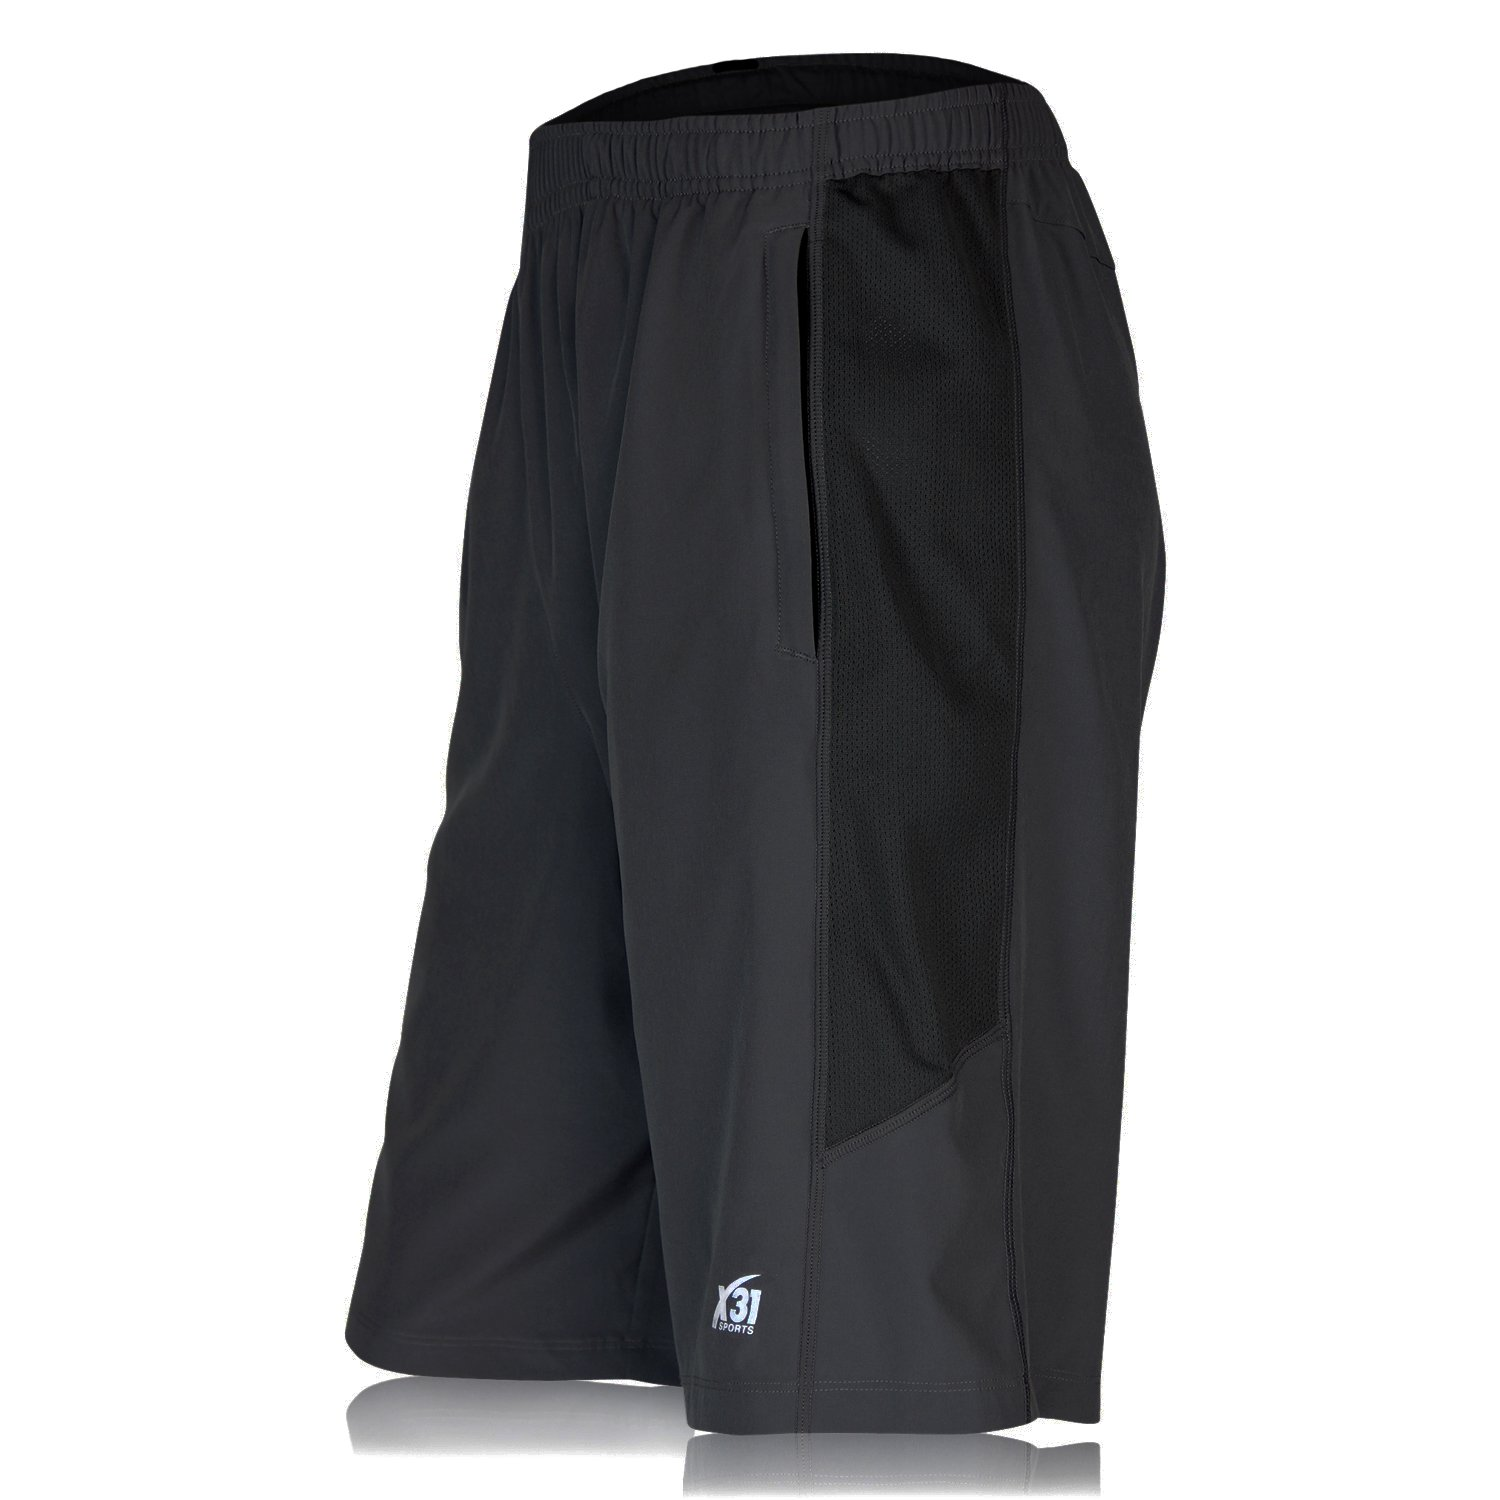 3f0f4b0eea For those looking for Athletic Shorts with zippered pockets, versatile  enough to be worn while running, going to the gym or just being casual, ...